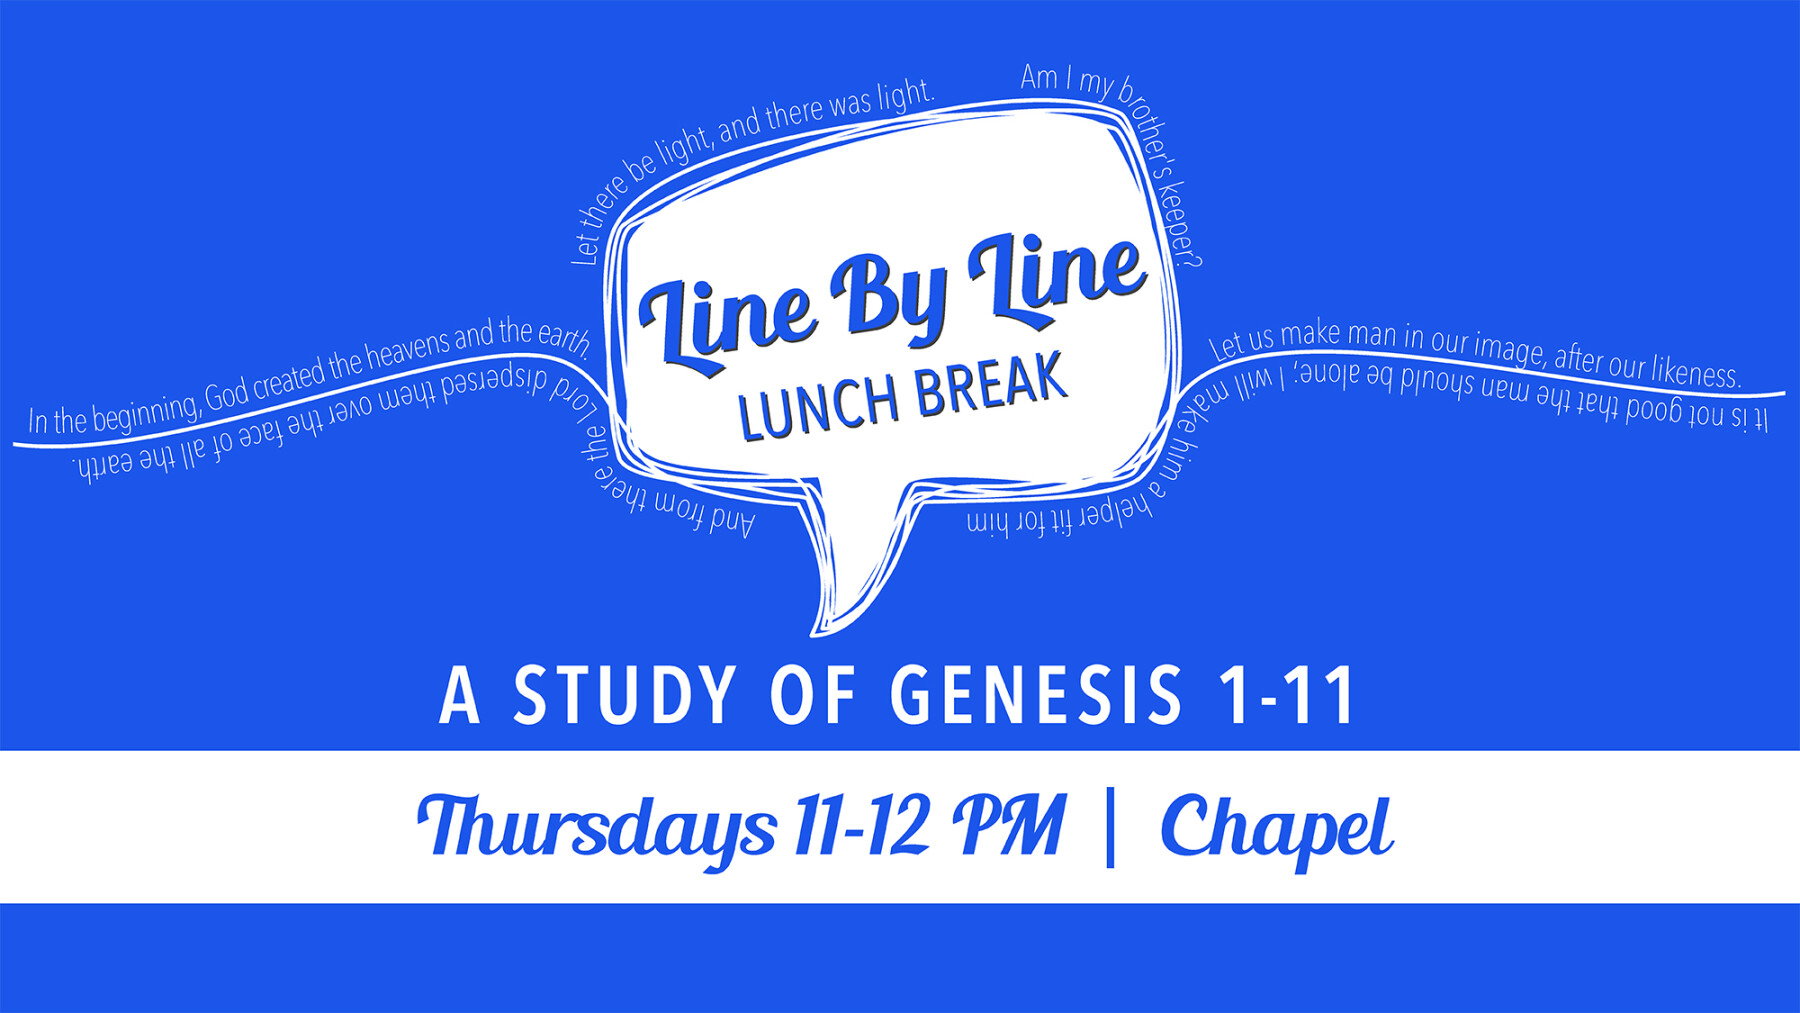 Line by Line: A Study of Genesis 1-11